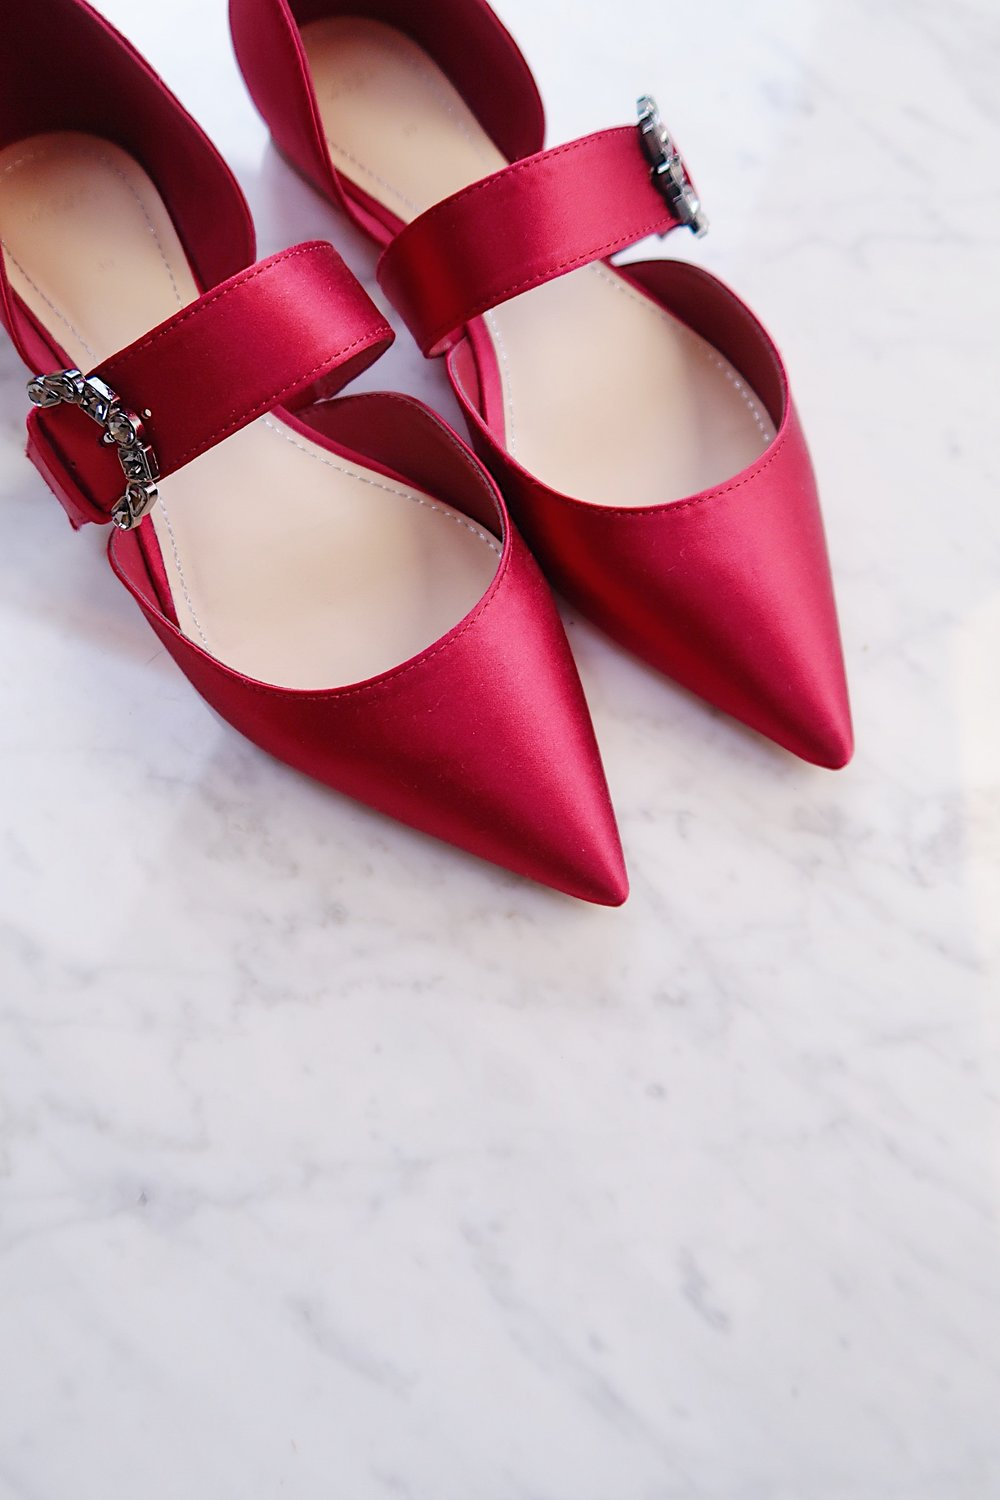 Zara burgundy ballerina flats with gem buckle | Favorite Fall Flats | Sundays and Somedays